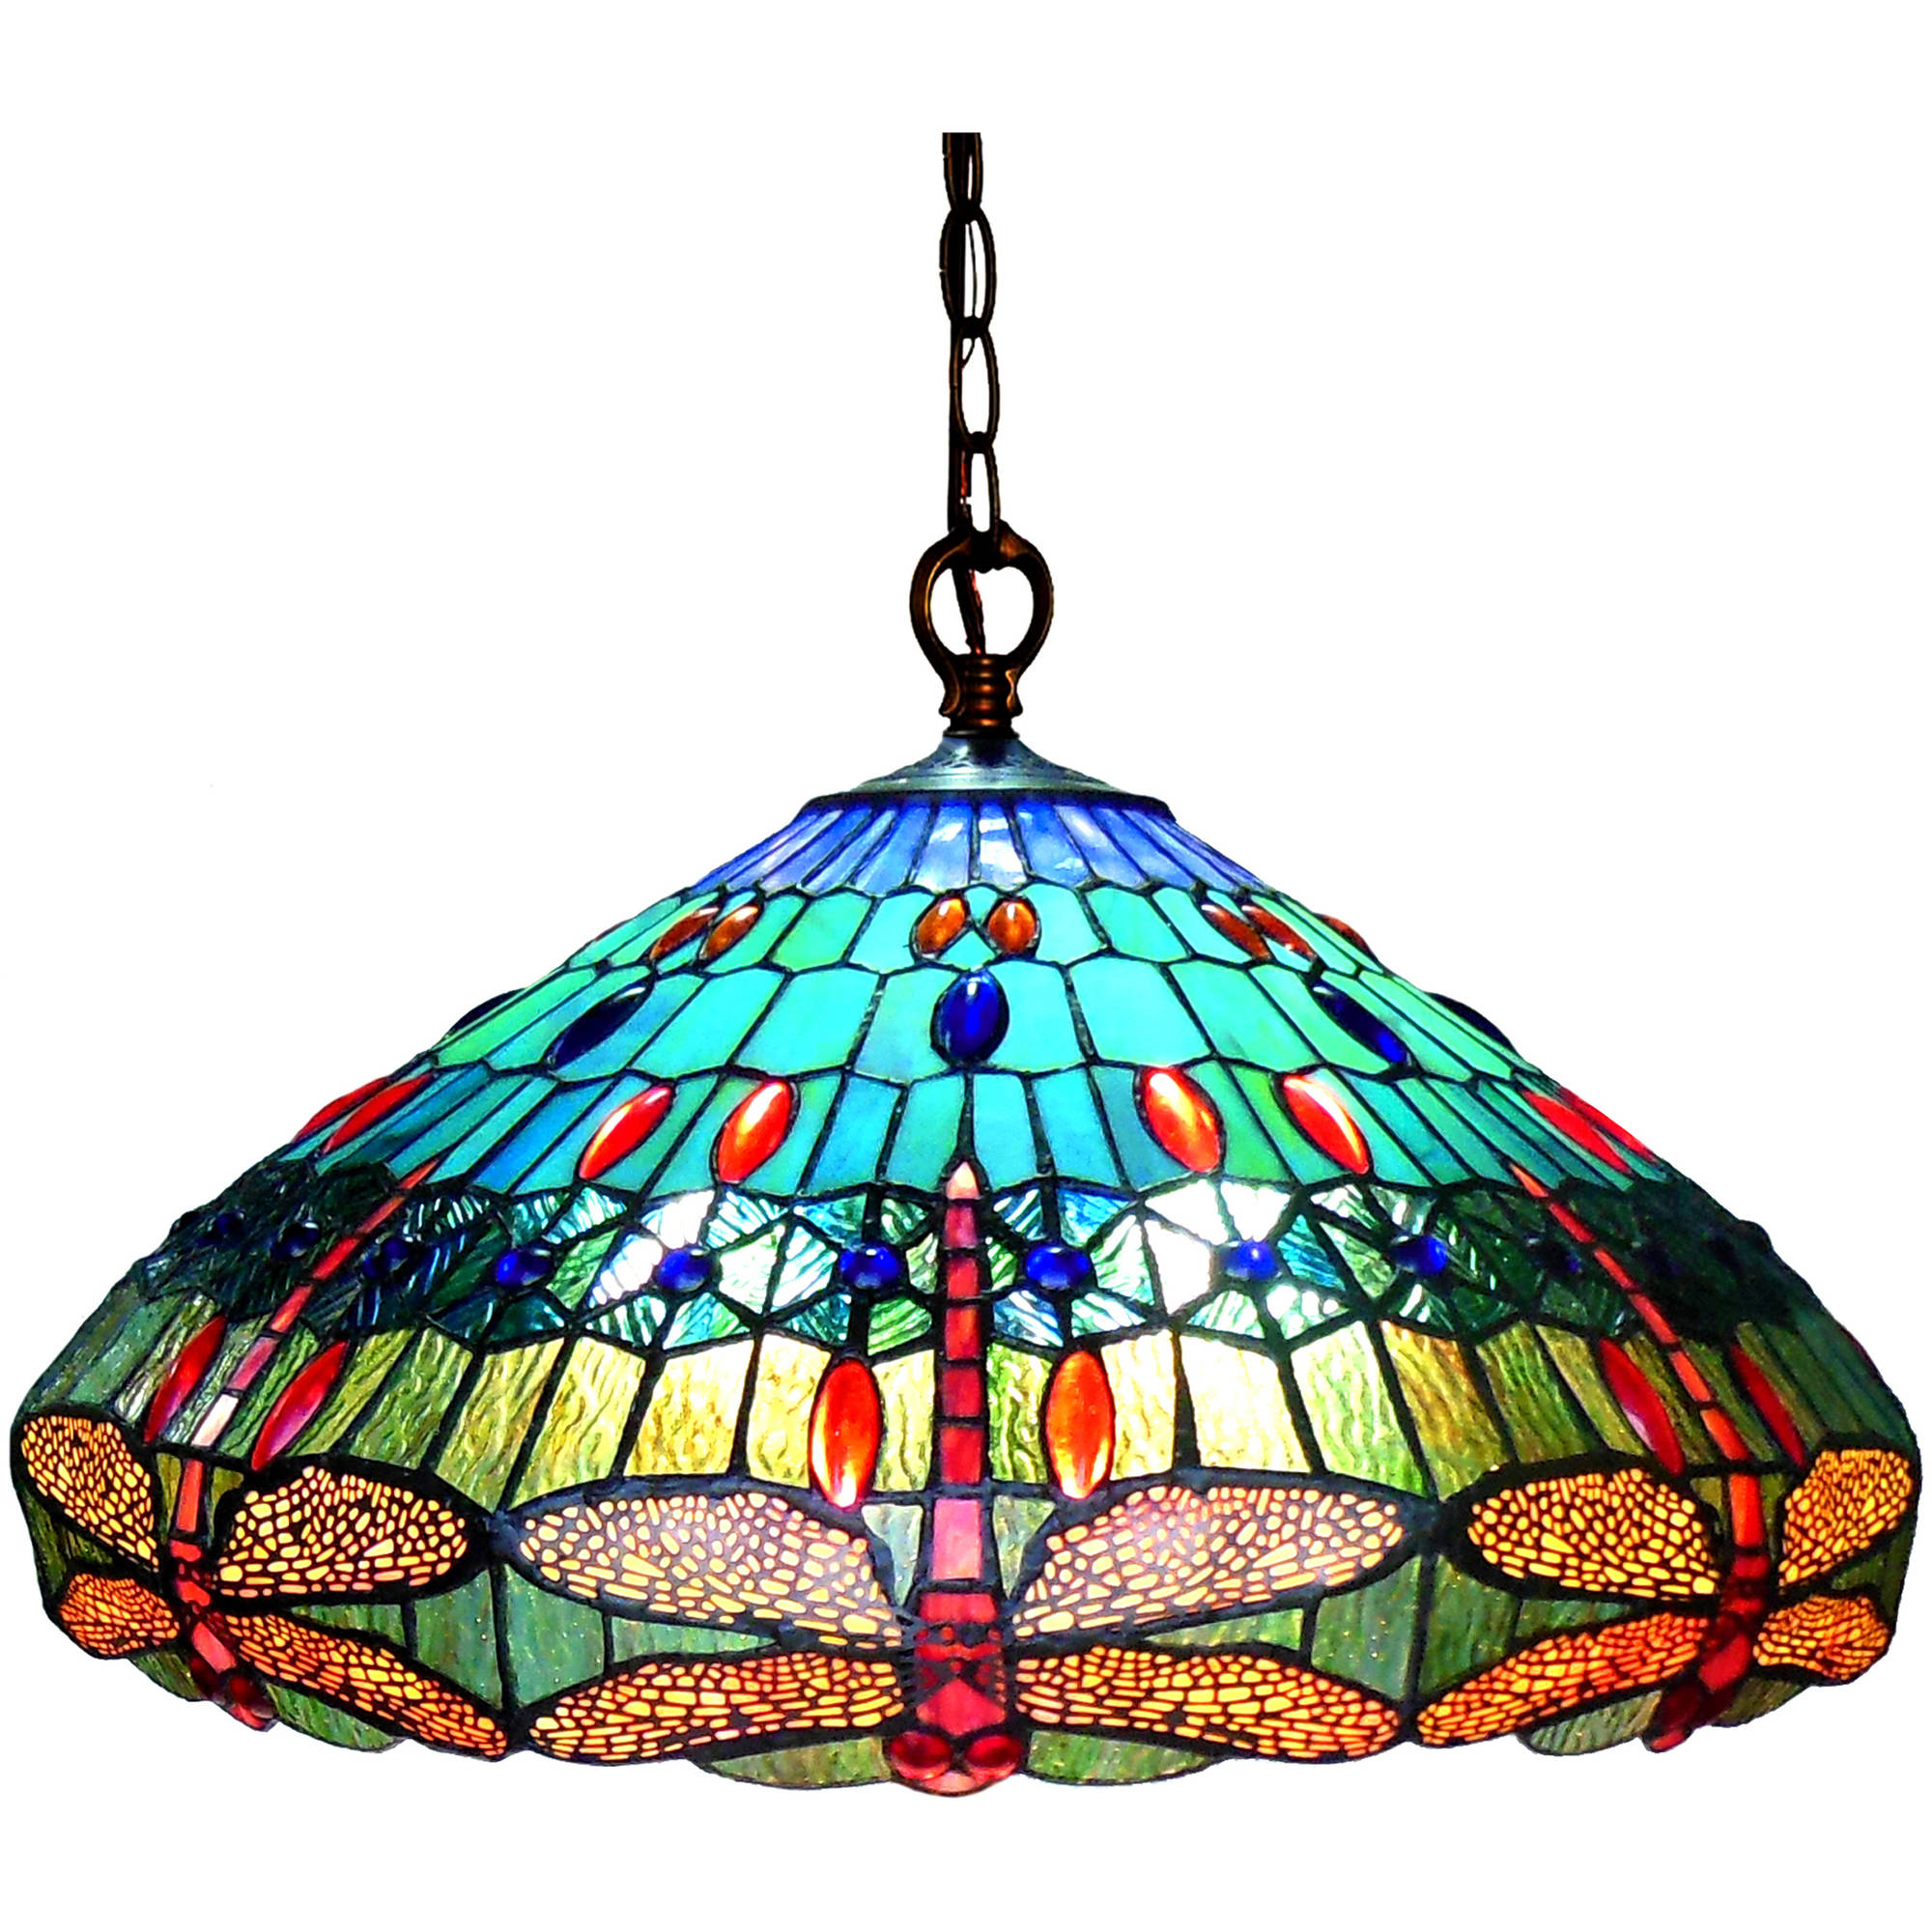 "Chloe Lighting Scarlet Tiffany-Style 3-Light Dragonfly Hanging Pendant Lamp with 24"" Shade"